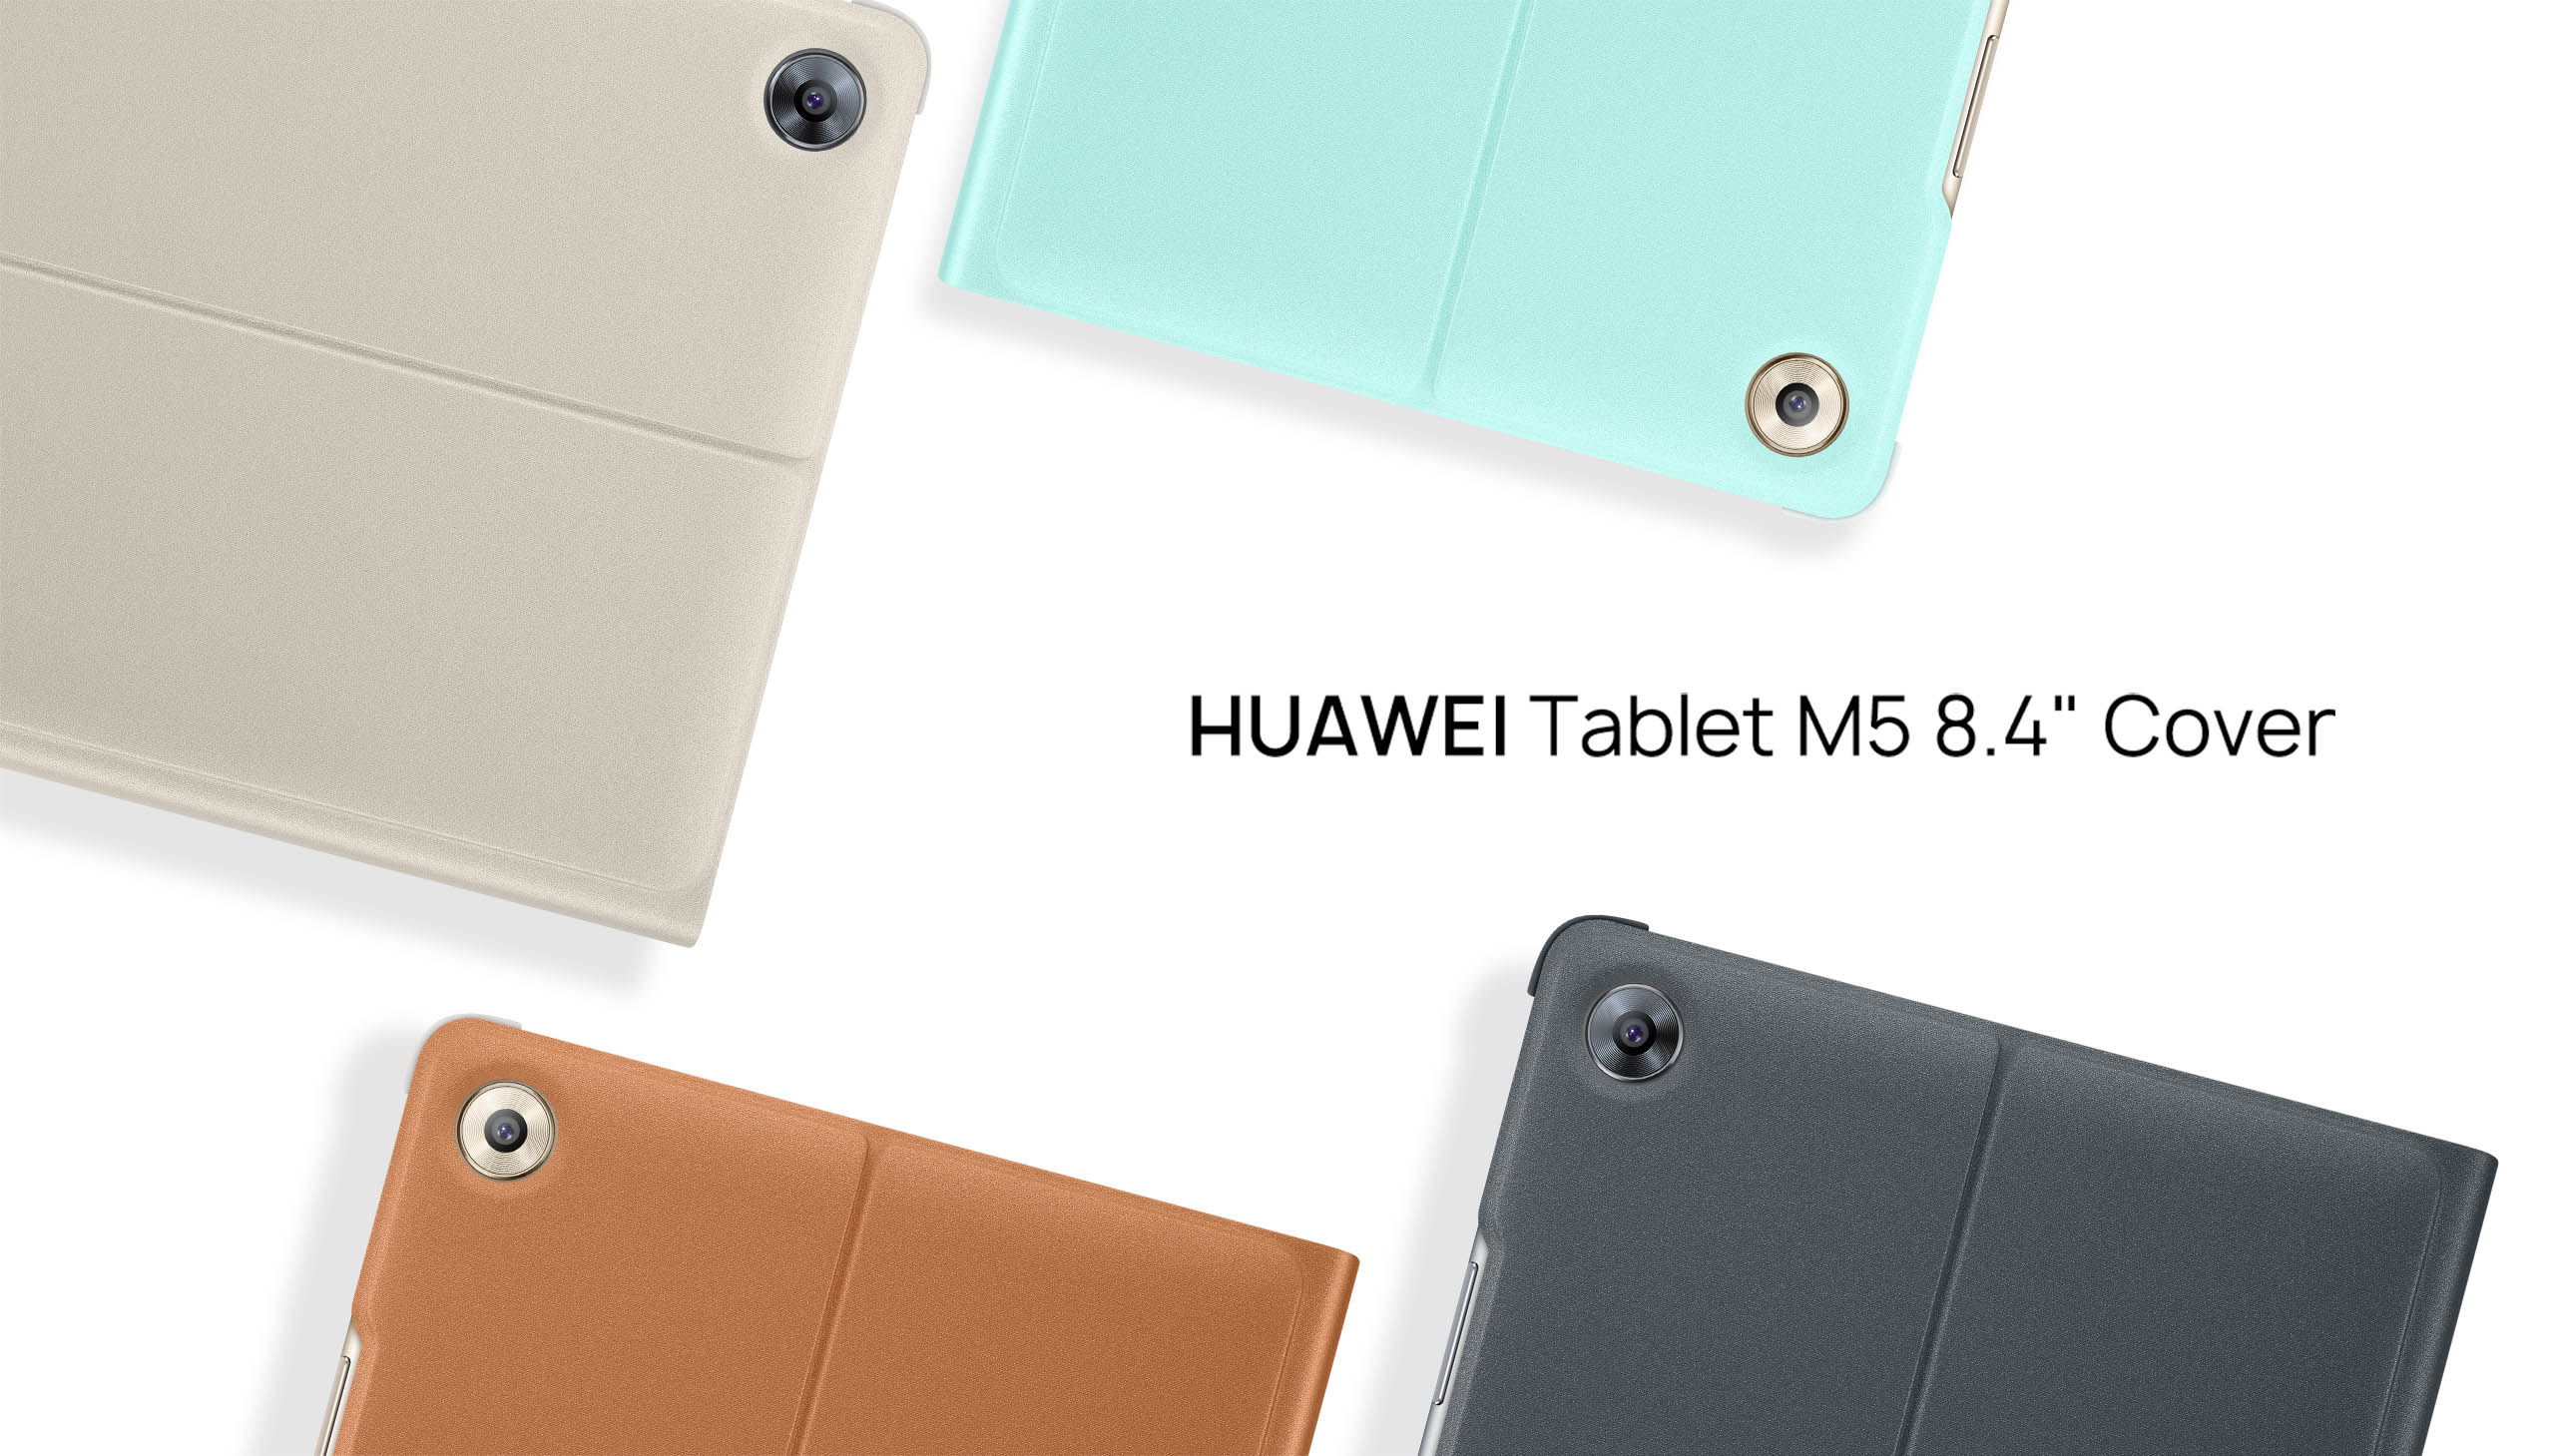 "HUAWEI Tablet M5 8.4"" Cover"